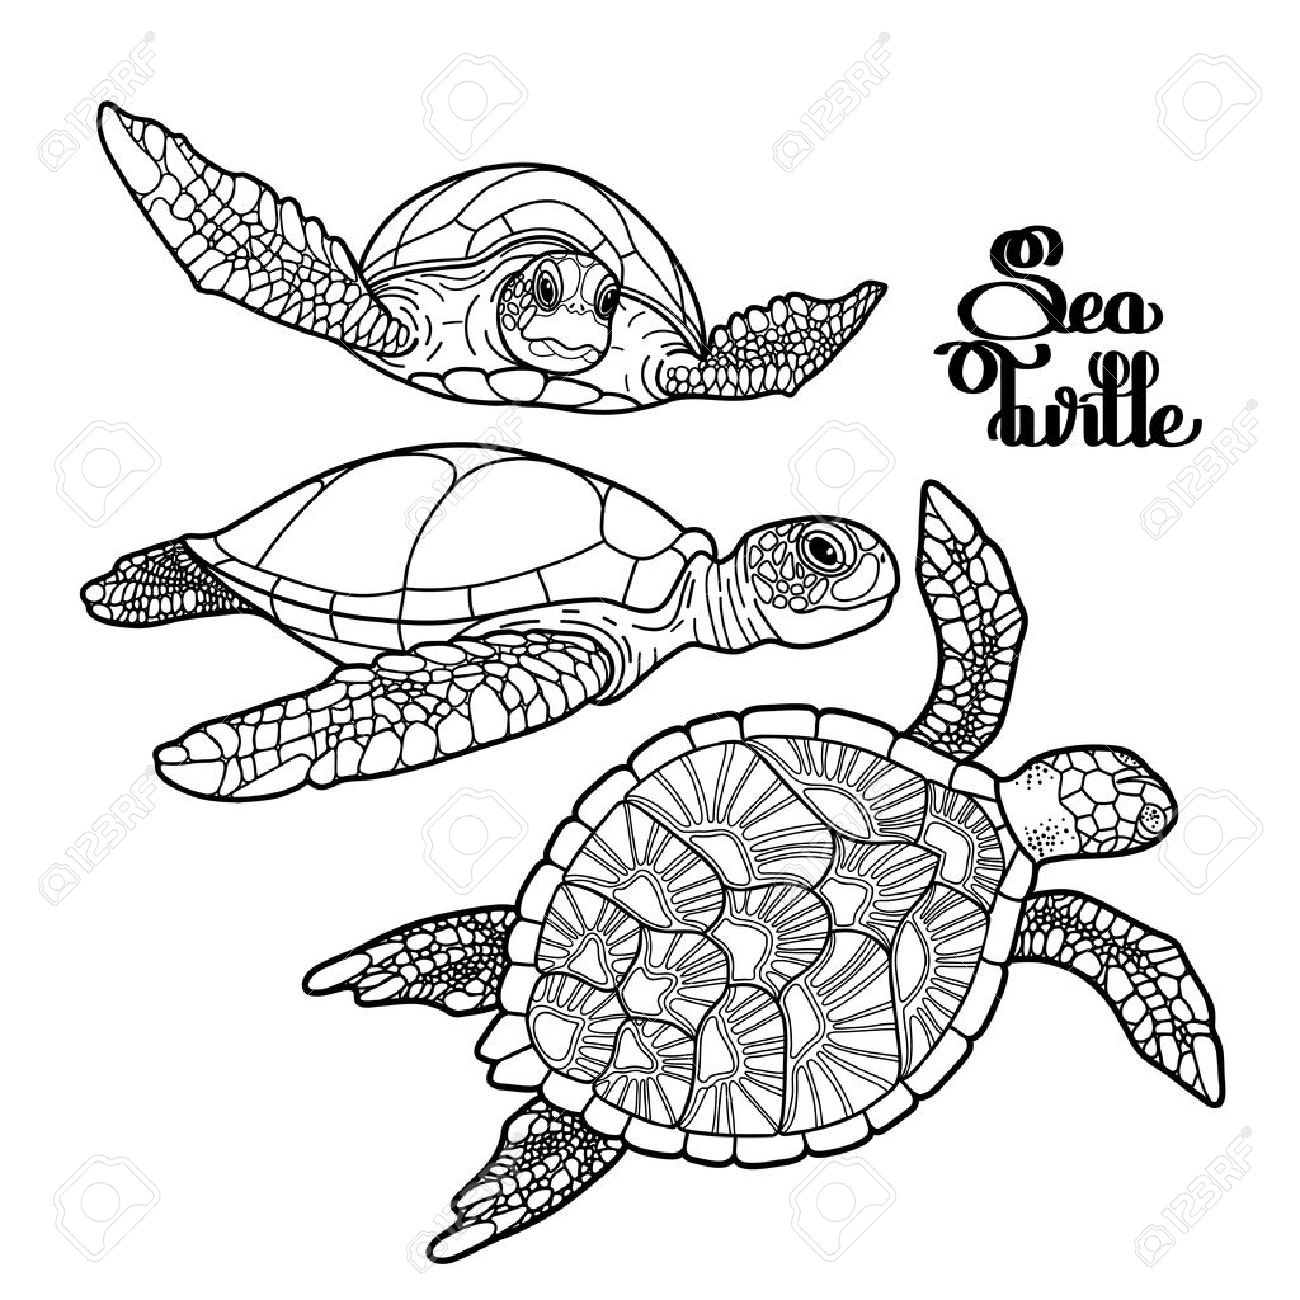 1300x1300 Graphic Hawksbill Sea Turtle Collection Drawn In Line Art Style